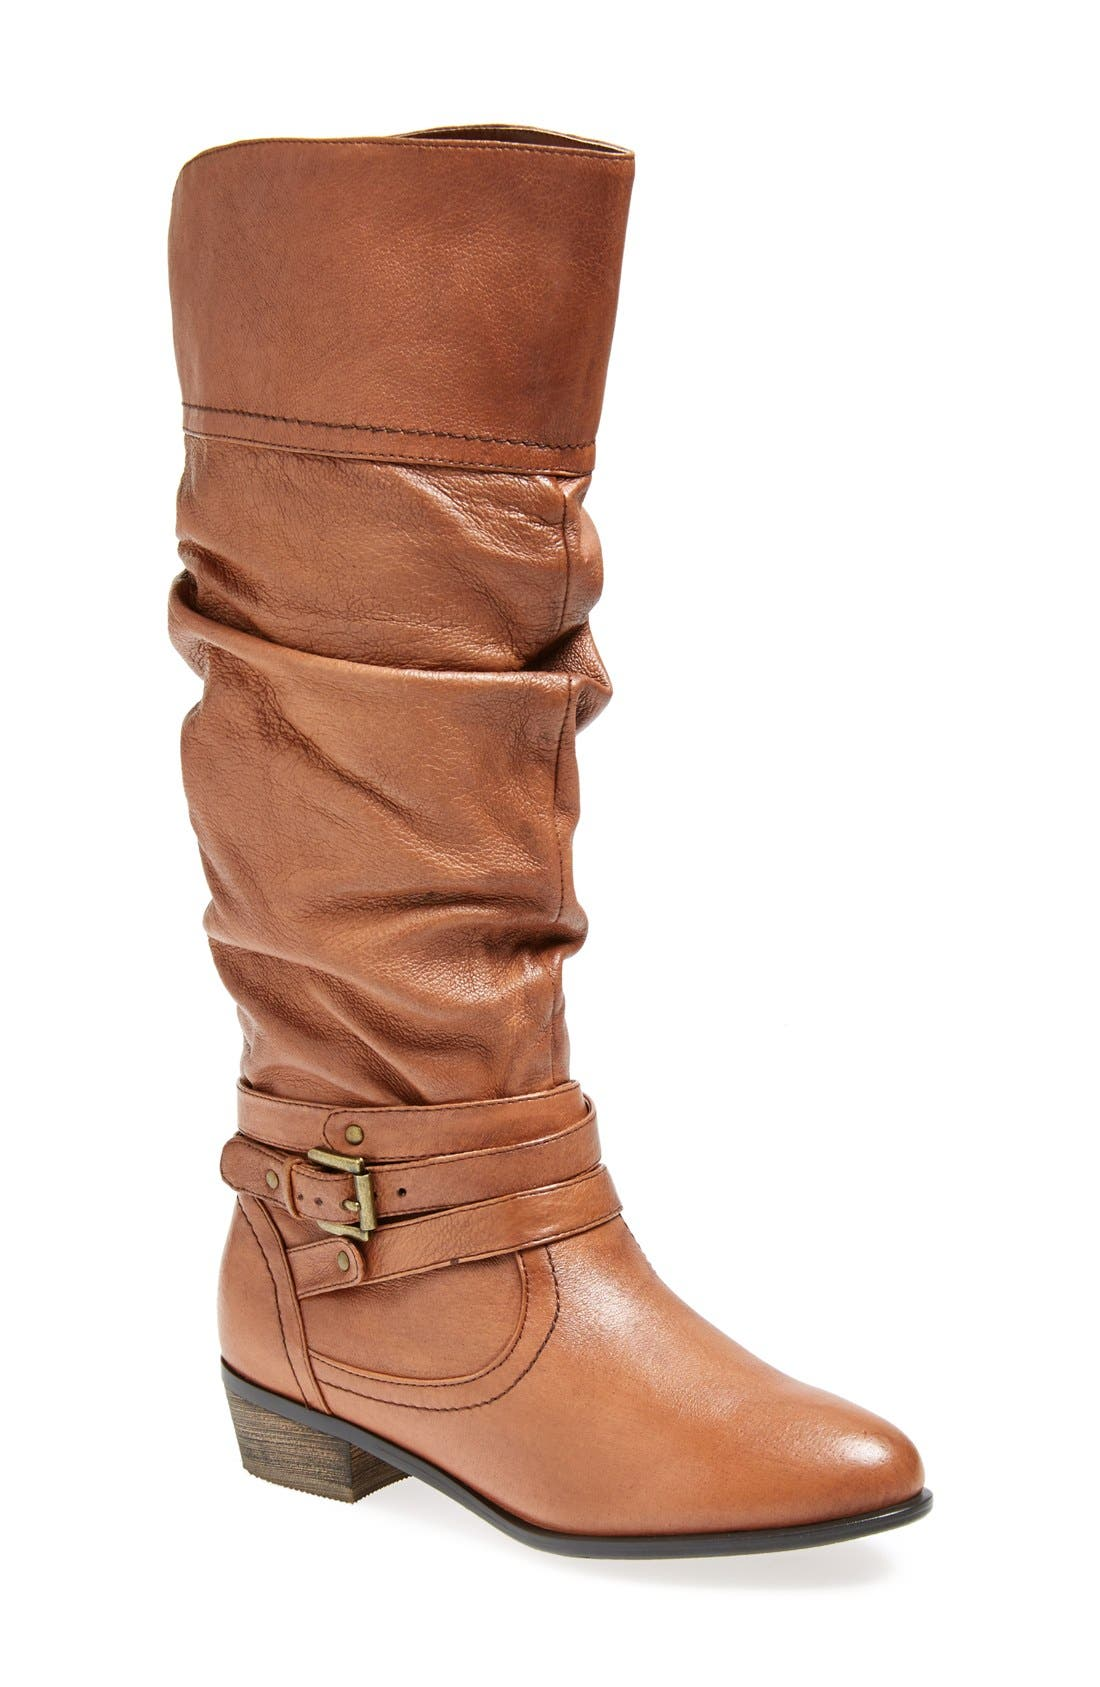 Alternate Image 1 Selected - Steve Madden 'Casstrow' Boot (Wide Calf) (Women)